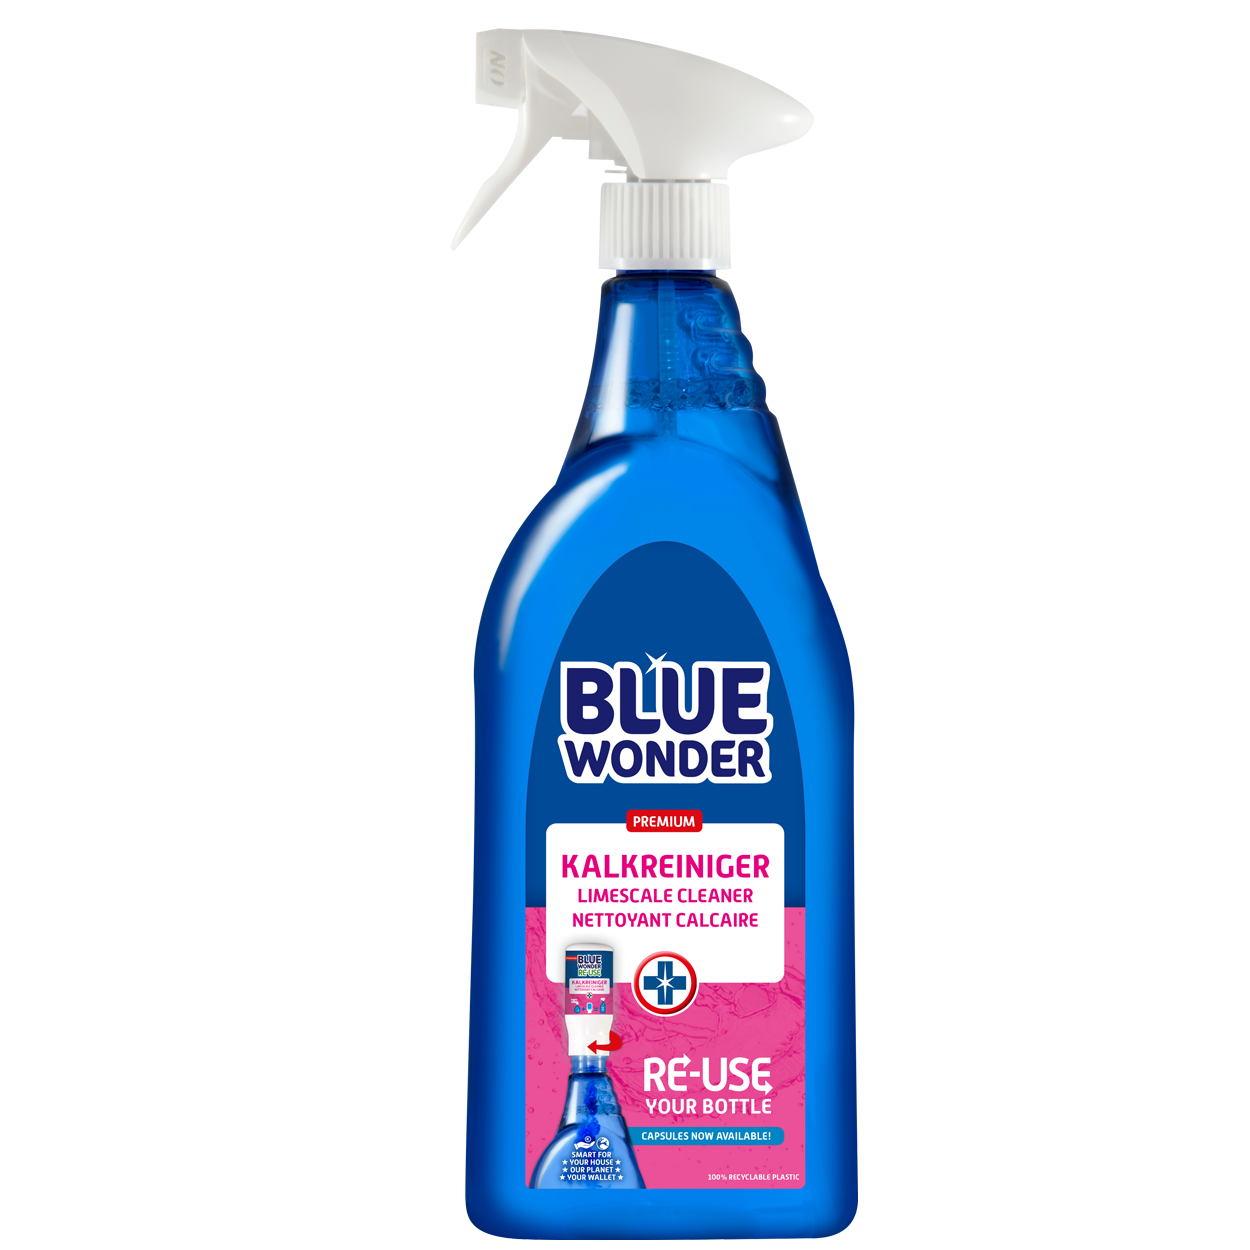 100% HYGIENIC, EXTREMELY POWERFUL. Removes limescale, dirt and grease with ease. Use Blue Wonder to descale and clean your basin, toilet, shower door, mirrors, bath, taps, glass screen, tiles and much more.